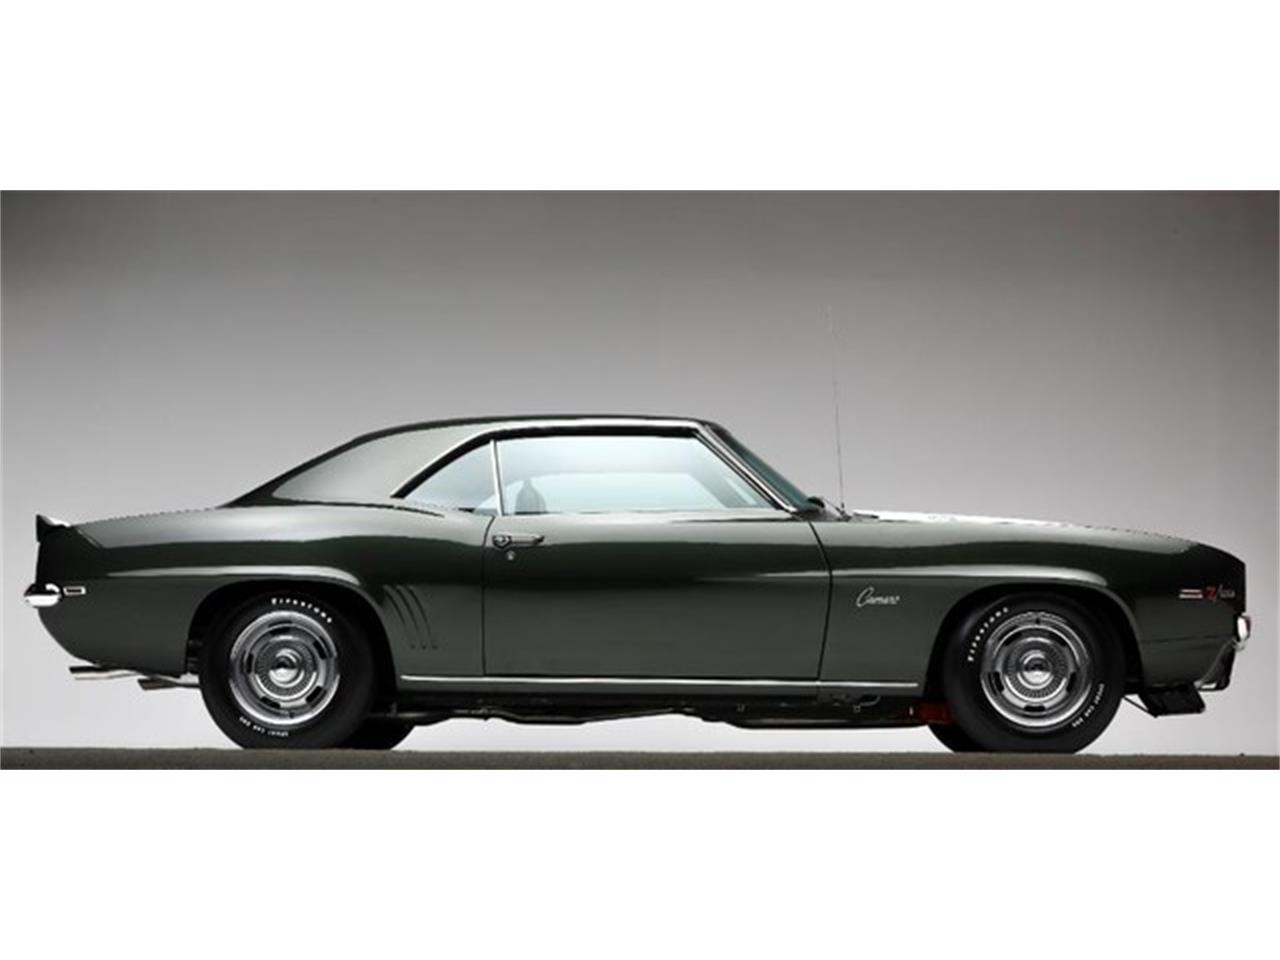 Large Picture of '69 Camaro located in New York - $97,500.00 Offered by Prestige Motor Car Co. - LBEX